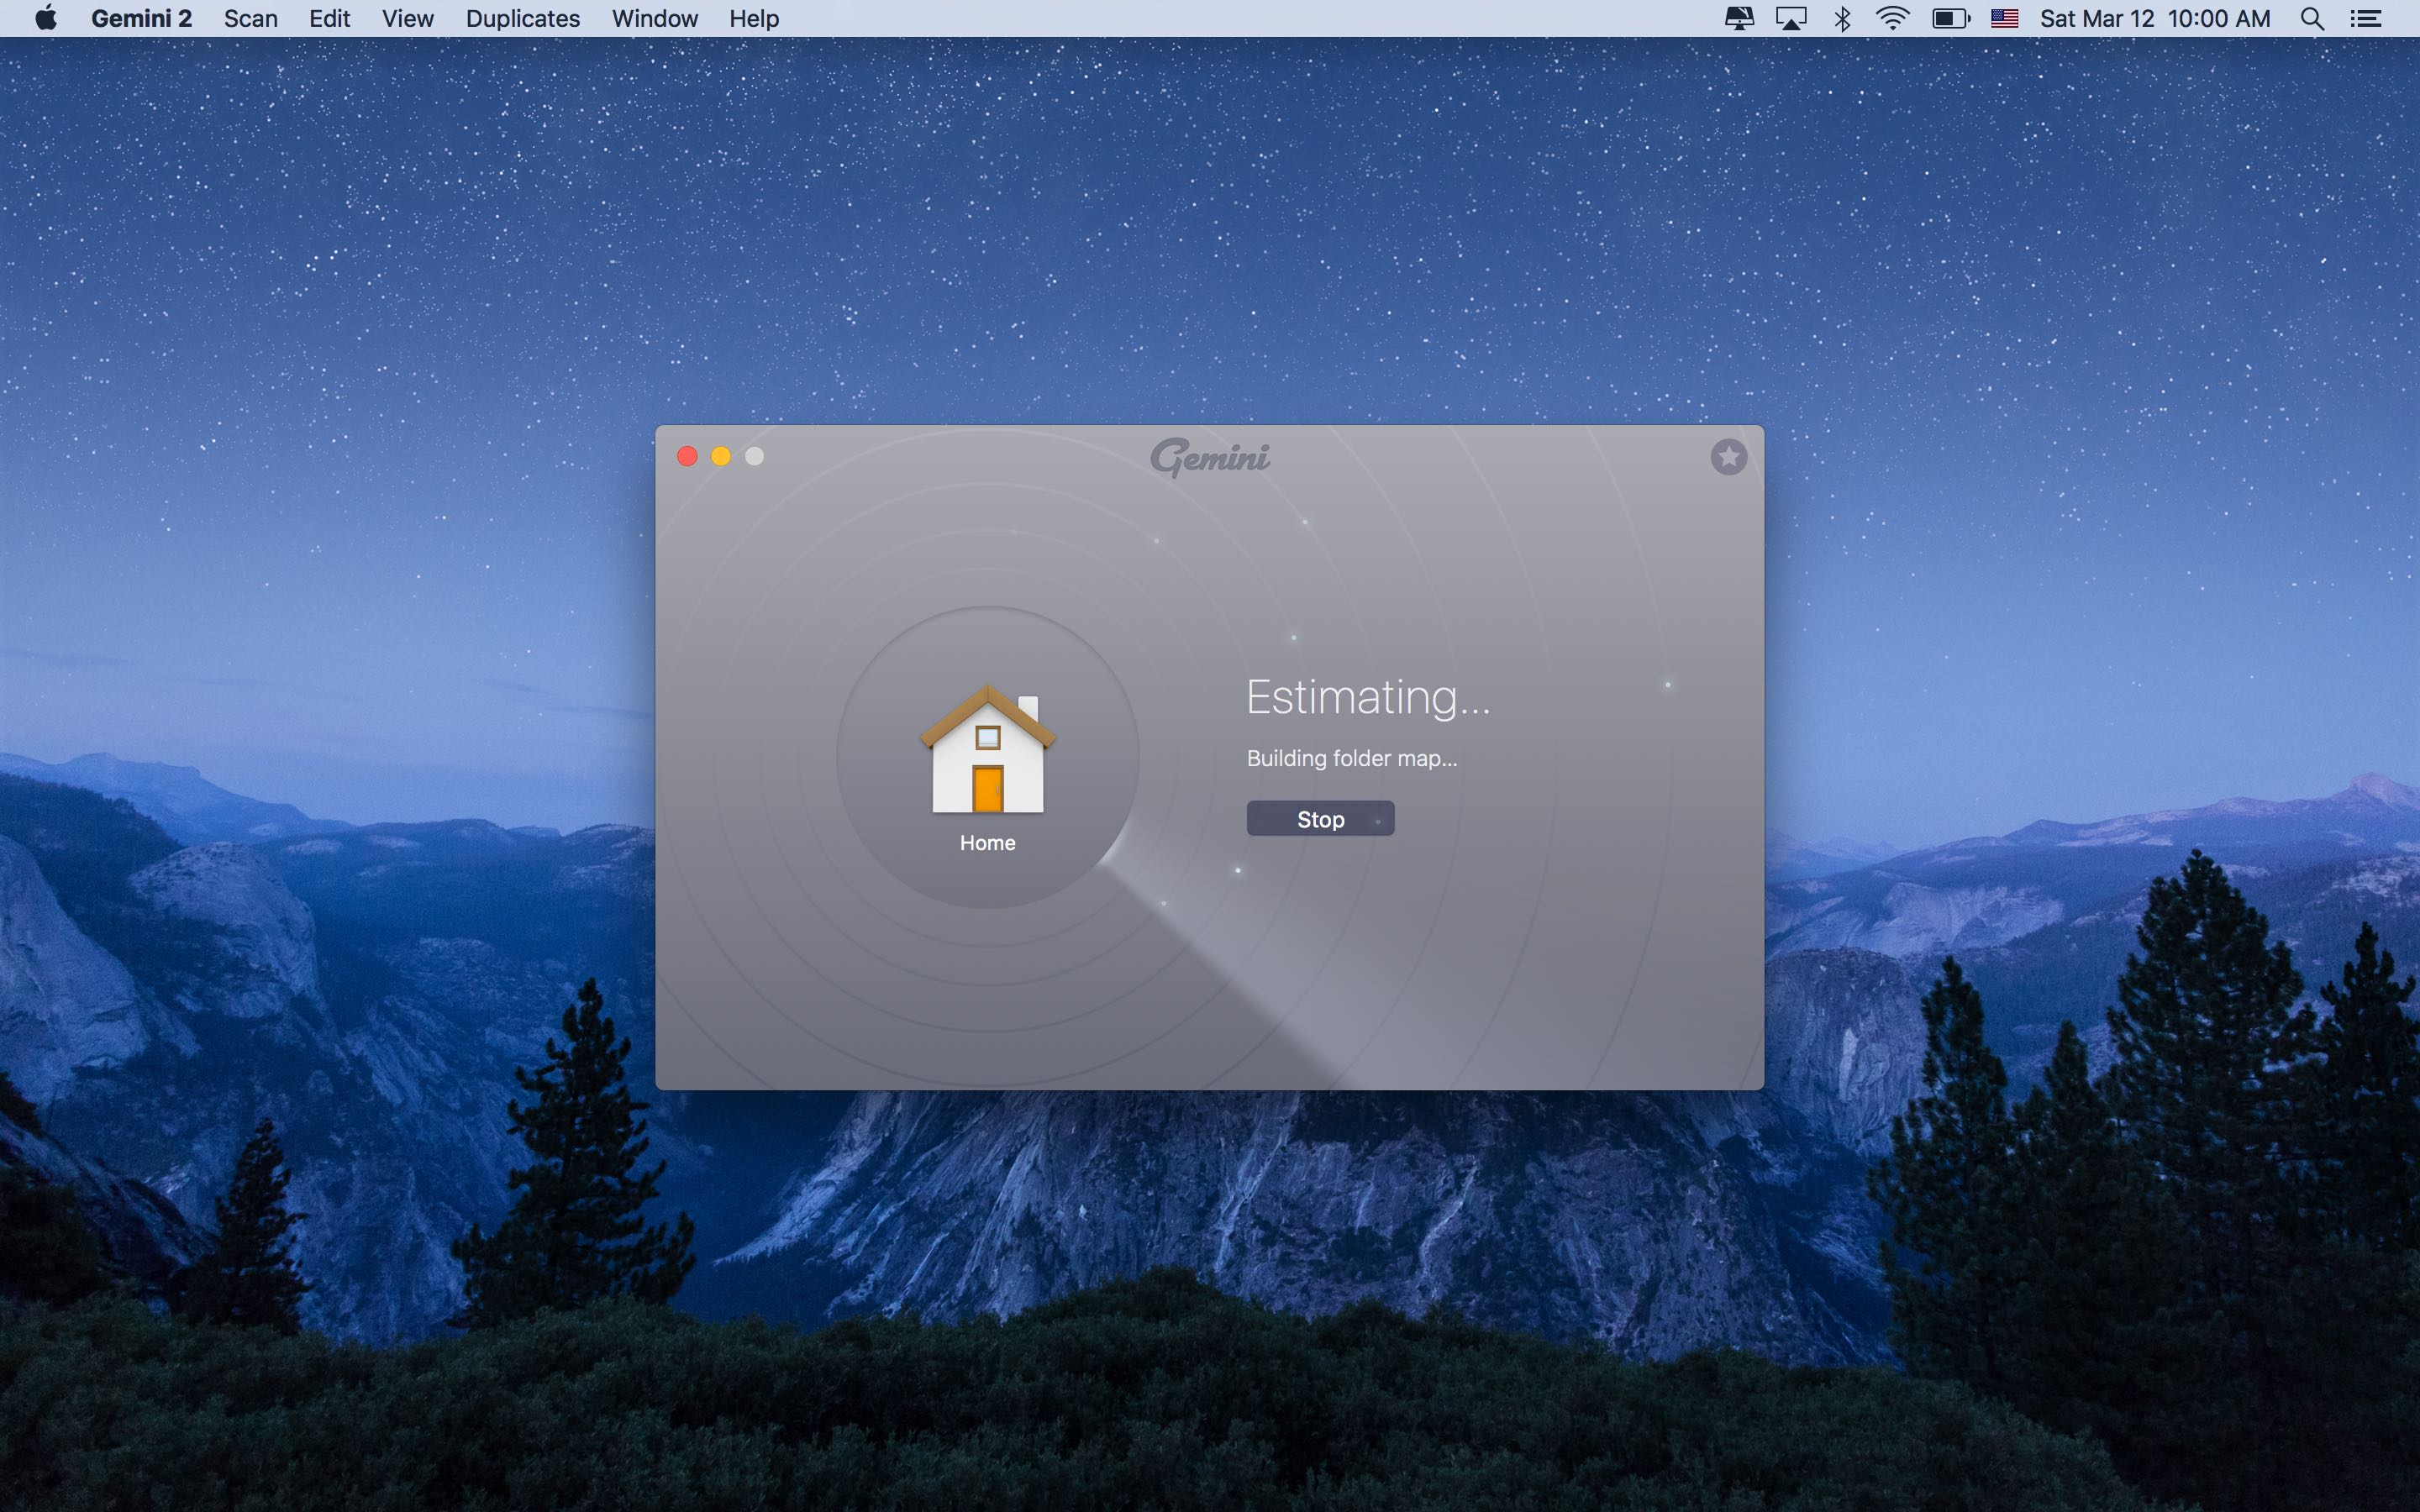 Gemini 2.0 for OS X laumch screen Mac screenshot 006